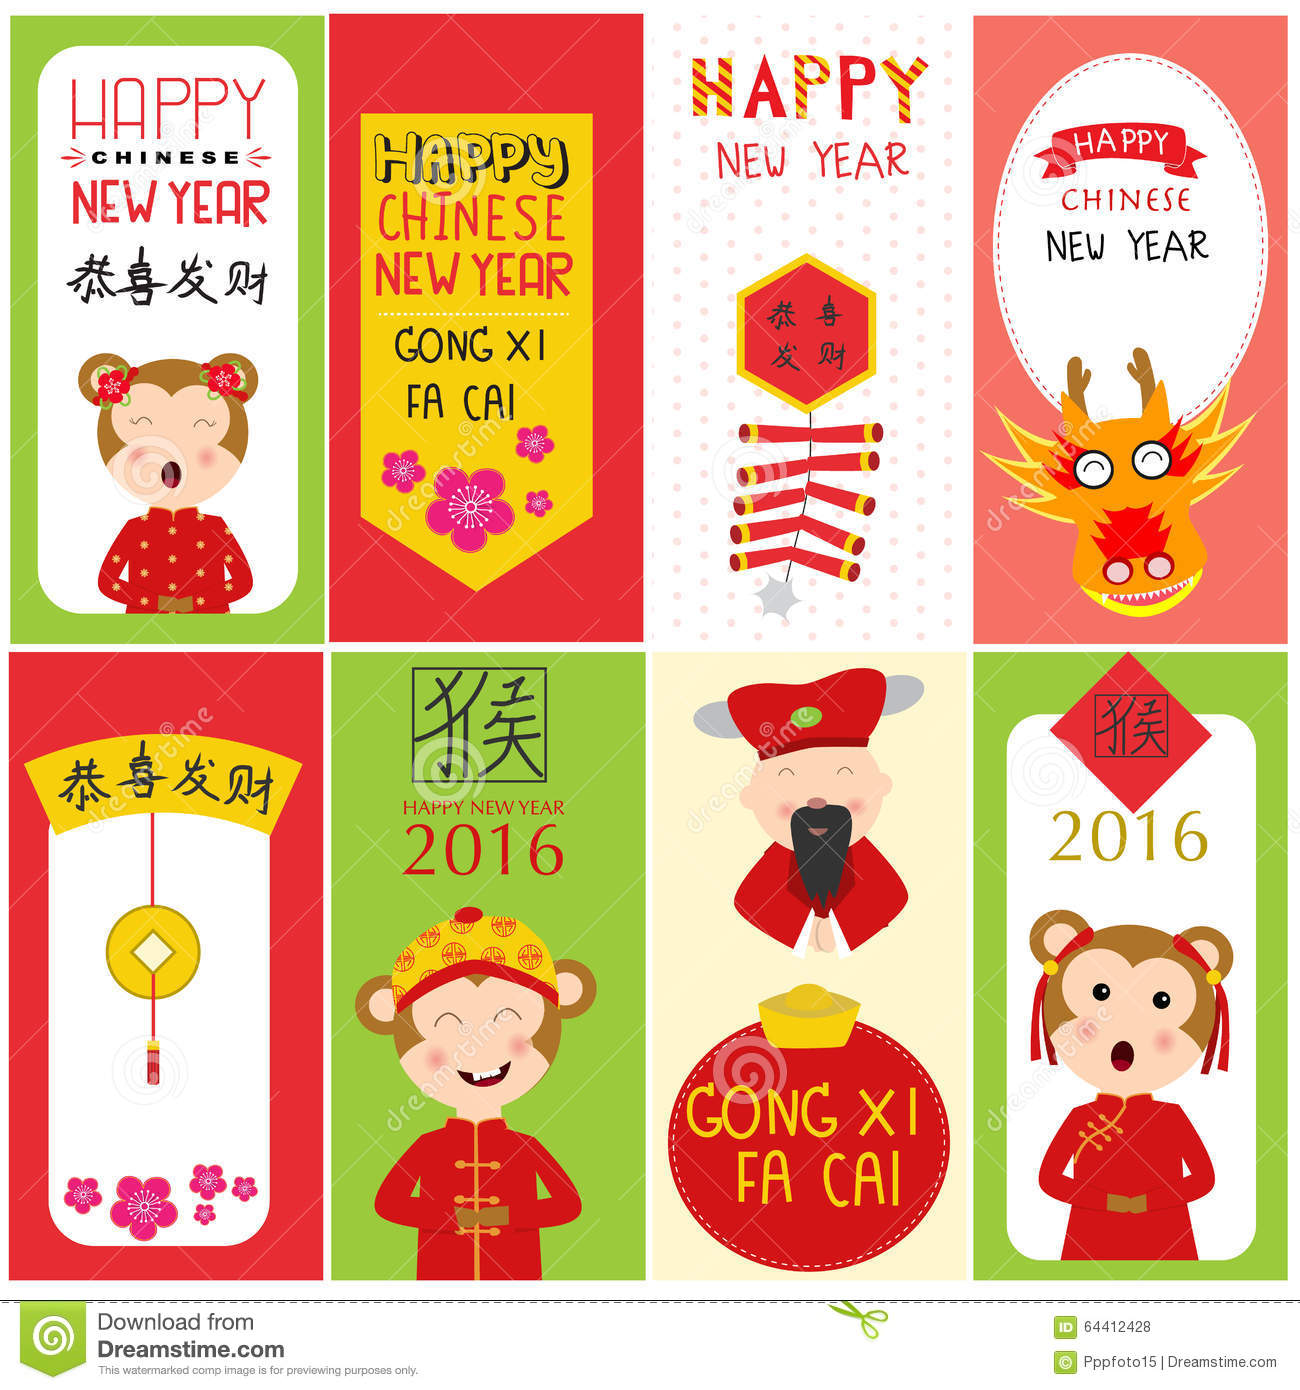 Happy Chinese New Year 2016 Banners With Kids In Chinese Costume